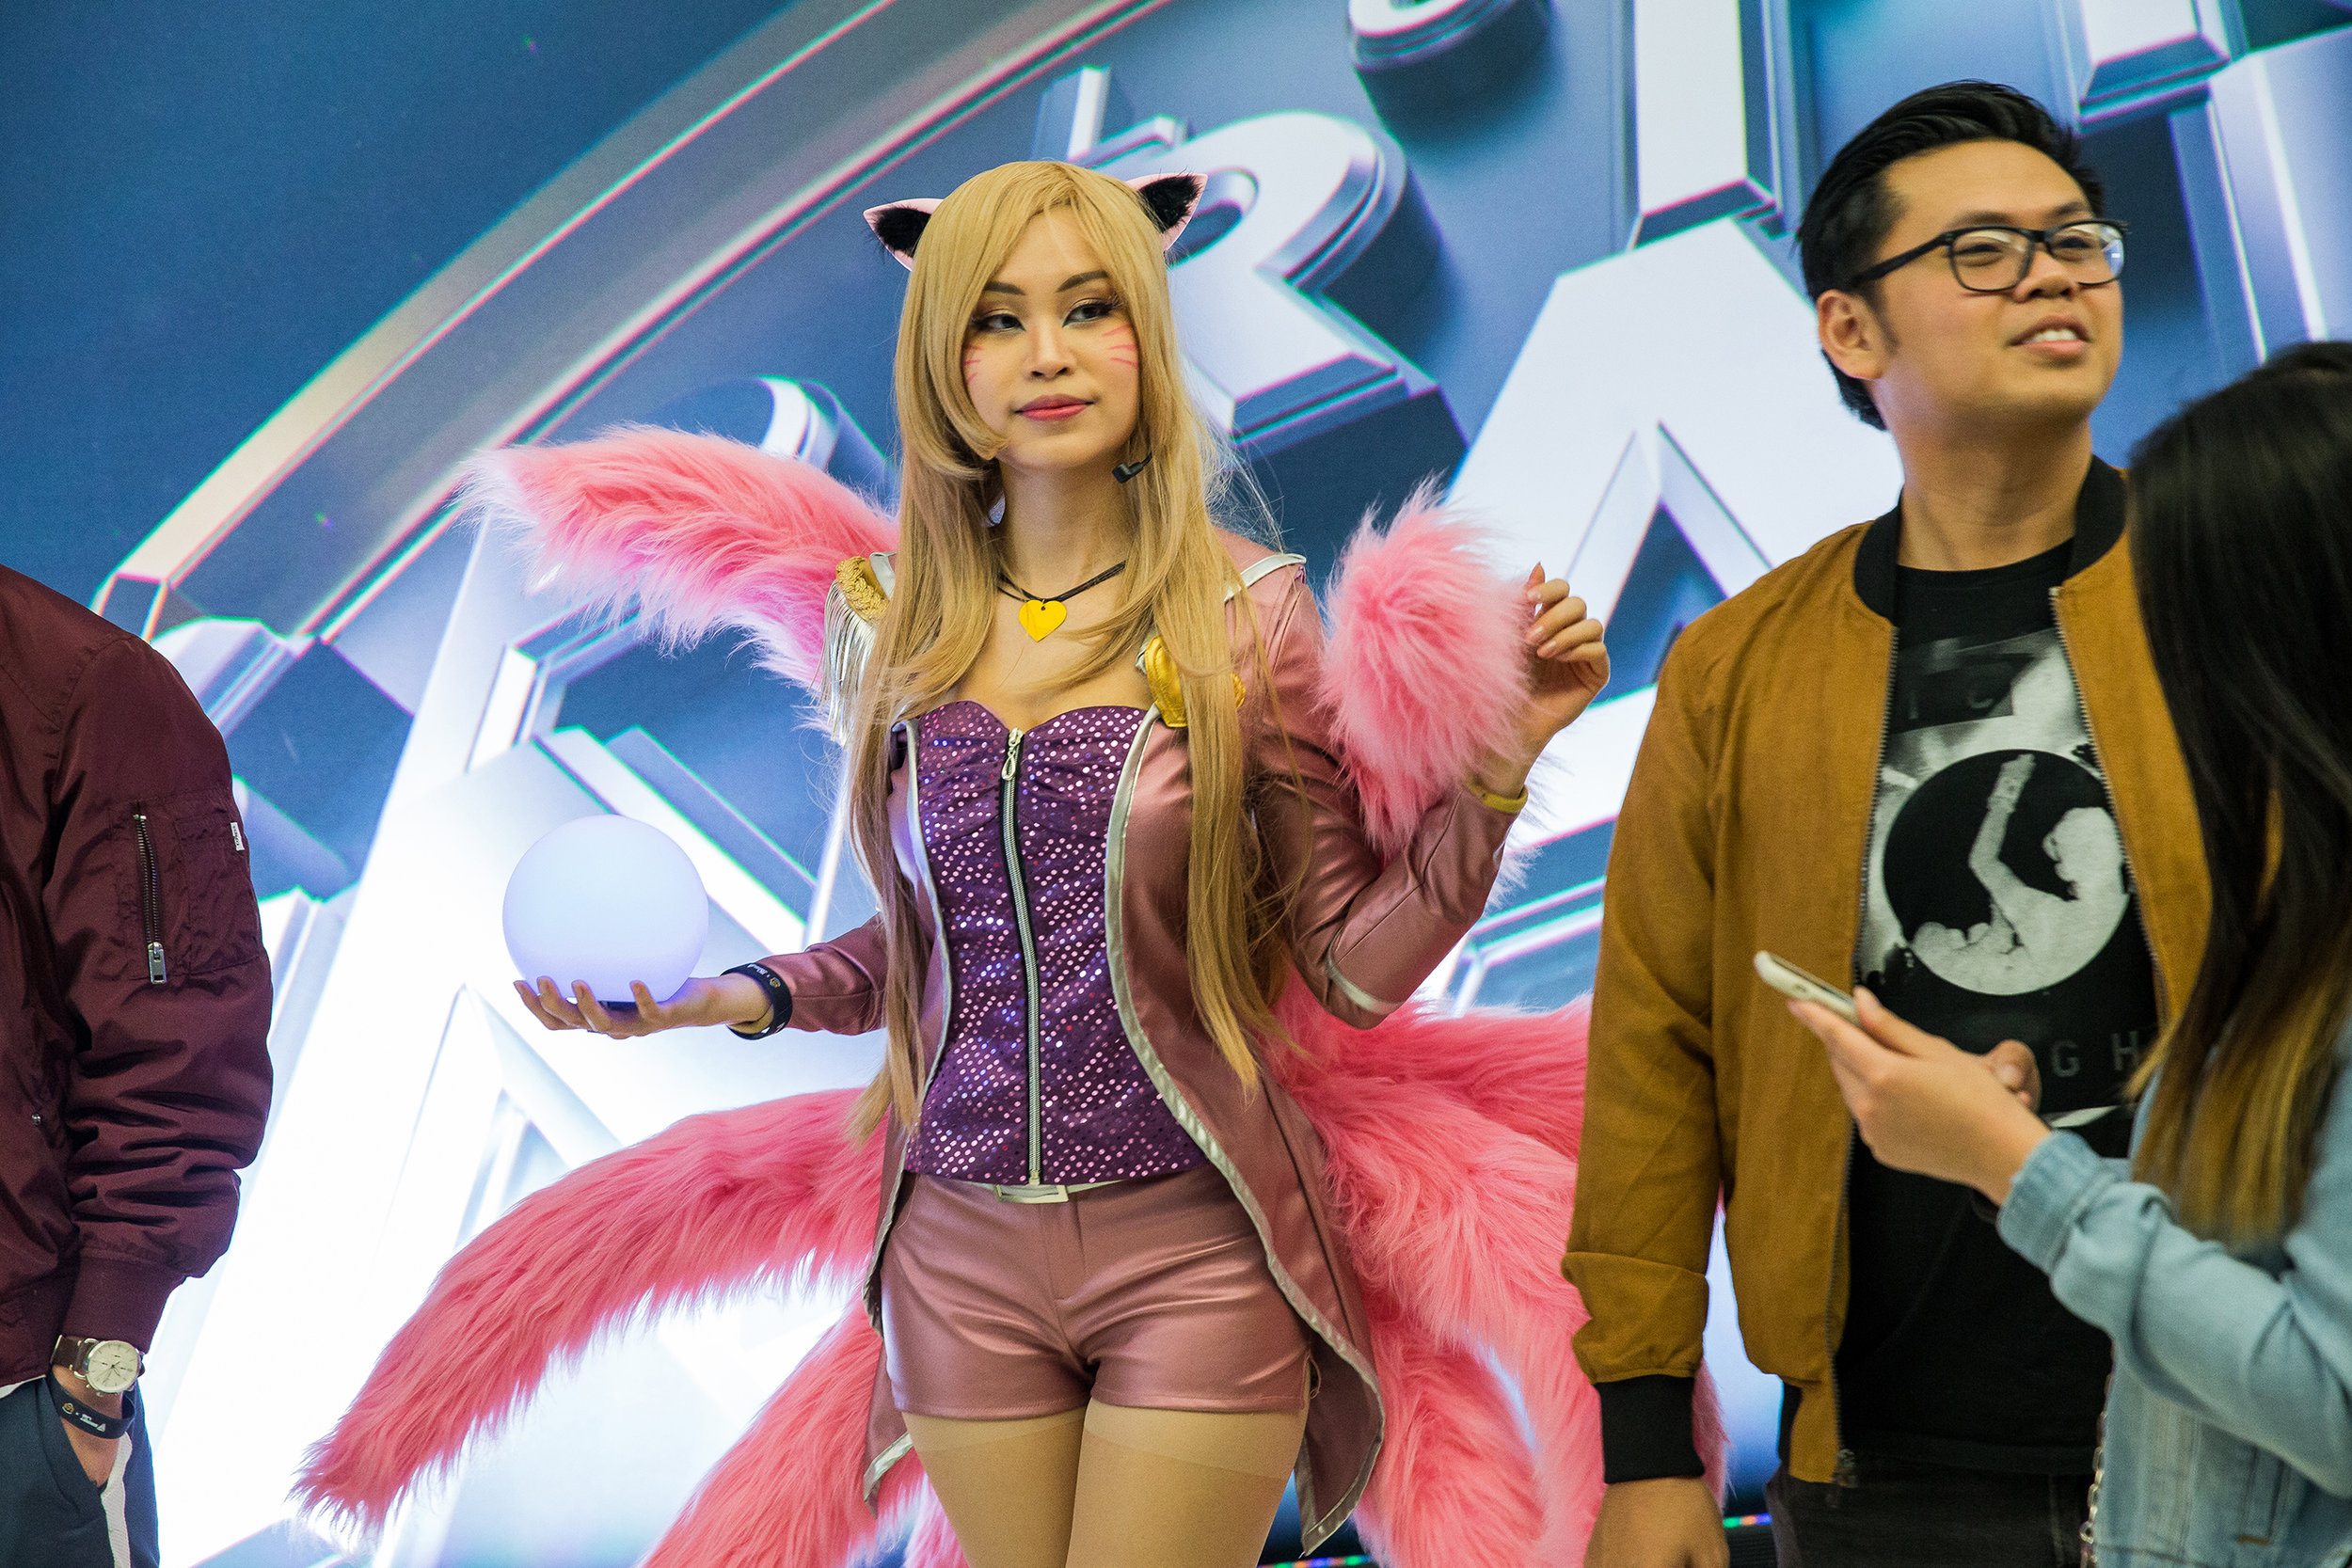 ST LOUIS, MO - APRIL 13: League of Legends character greeting fans at LCS Spring Finals at Chaifetz Arena on April 13, 2019 in St Louis, Missouri. Photo by David Doran/ESPAT Media